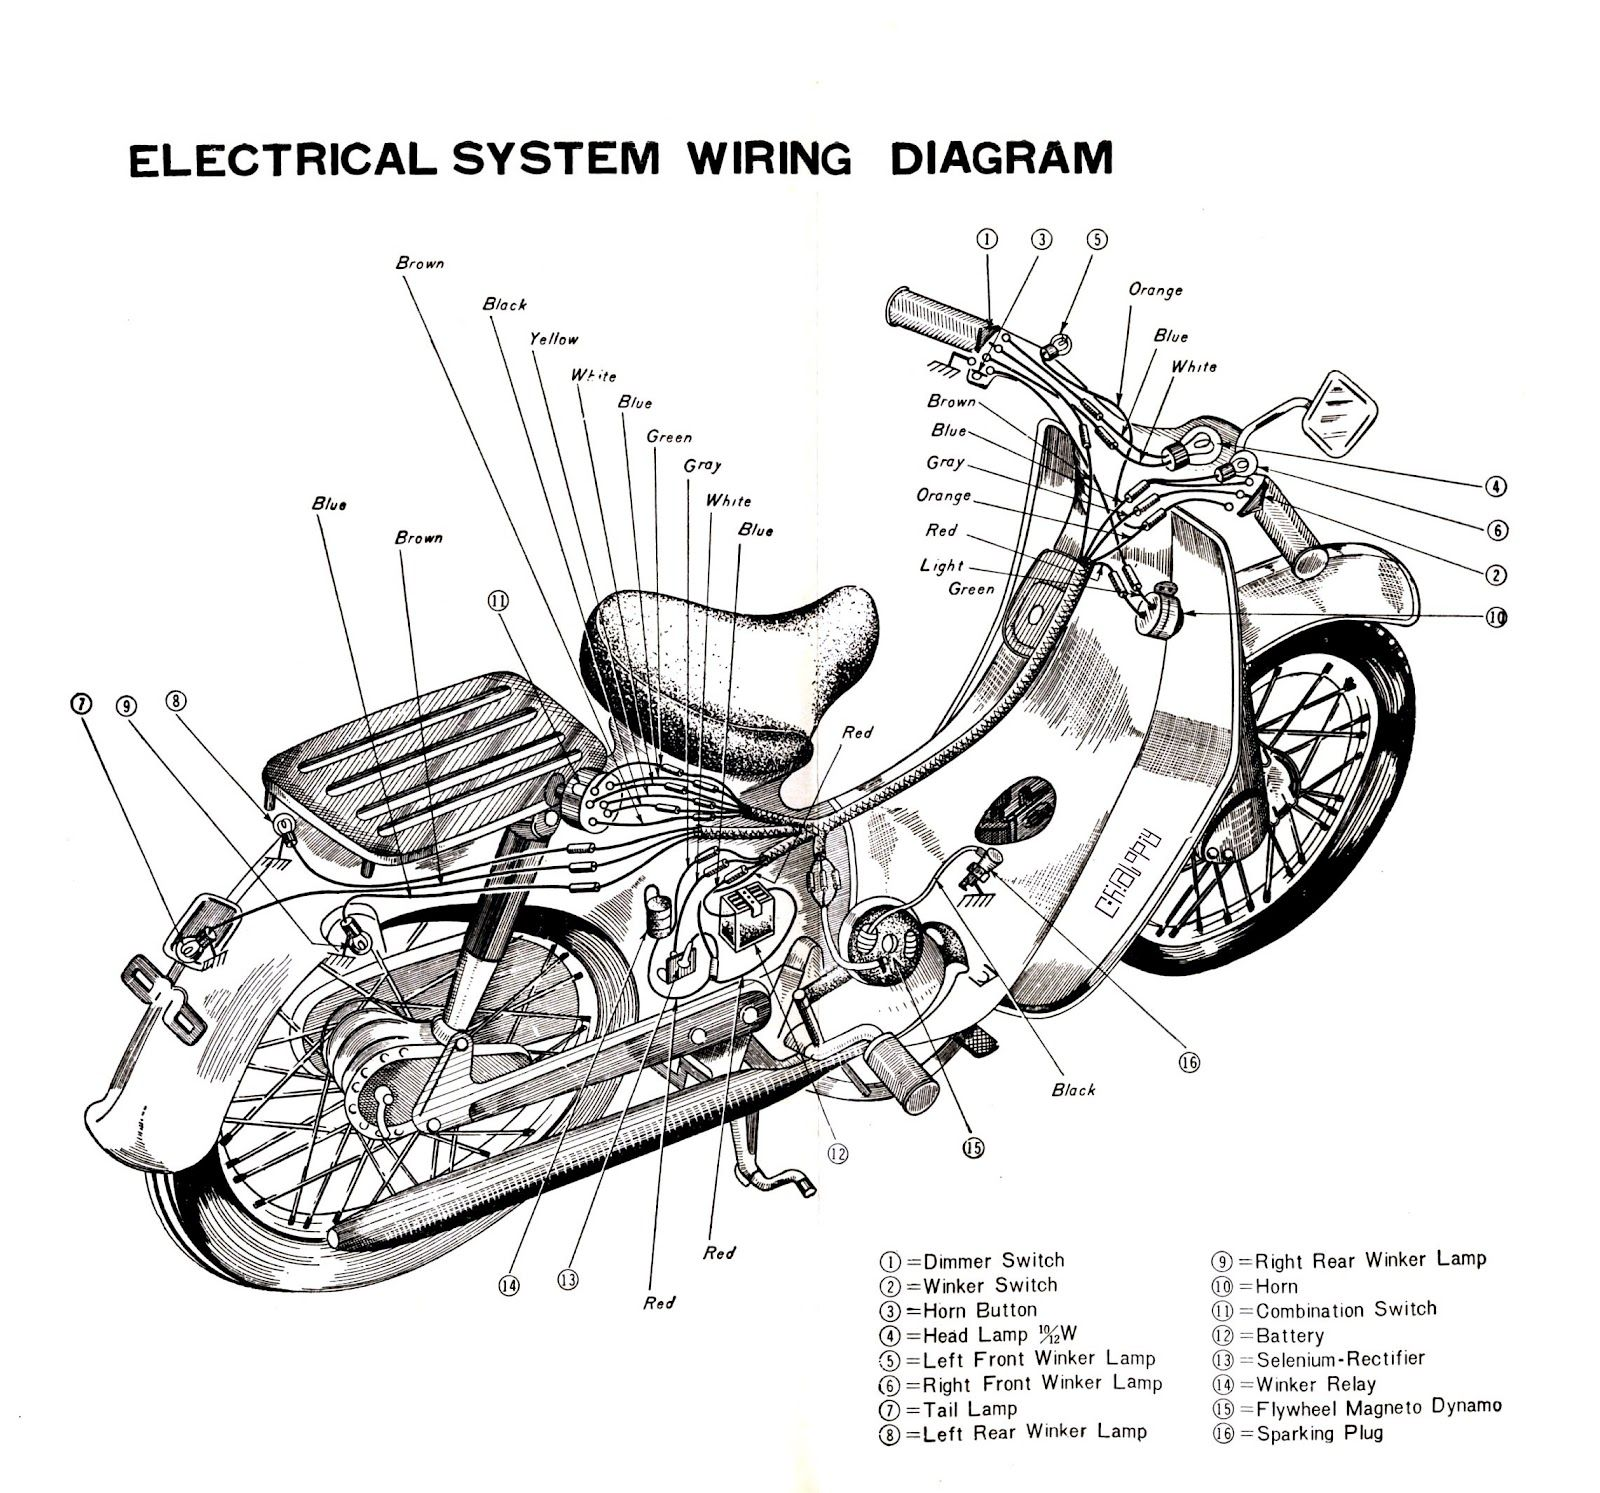 Super Club Electric Wiring Diagram | CUB Project | Pinterest | Super ...